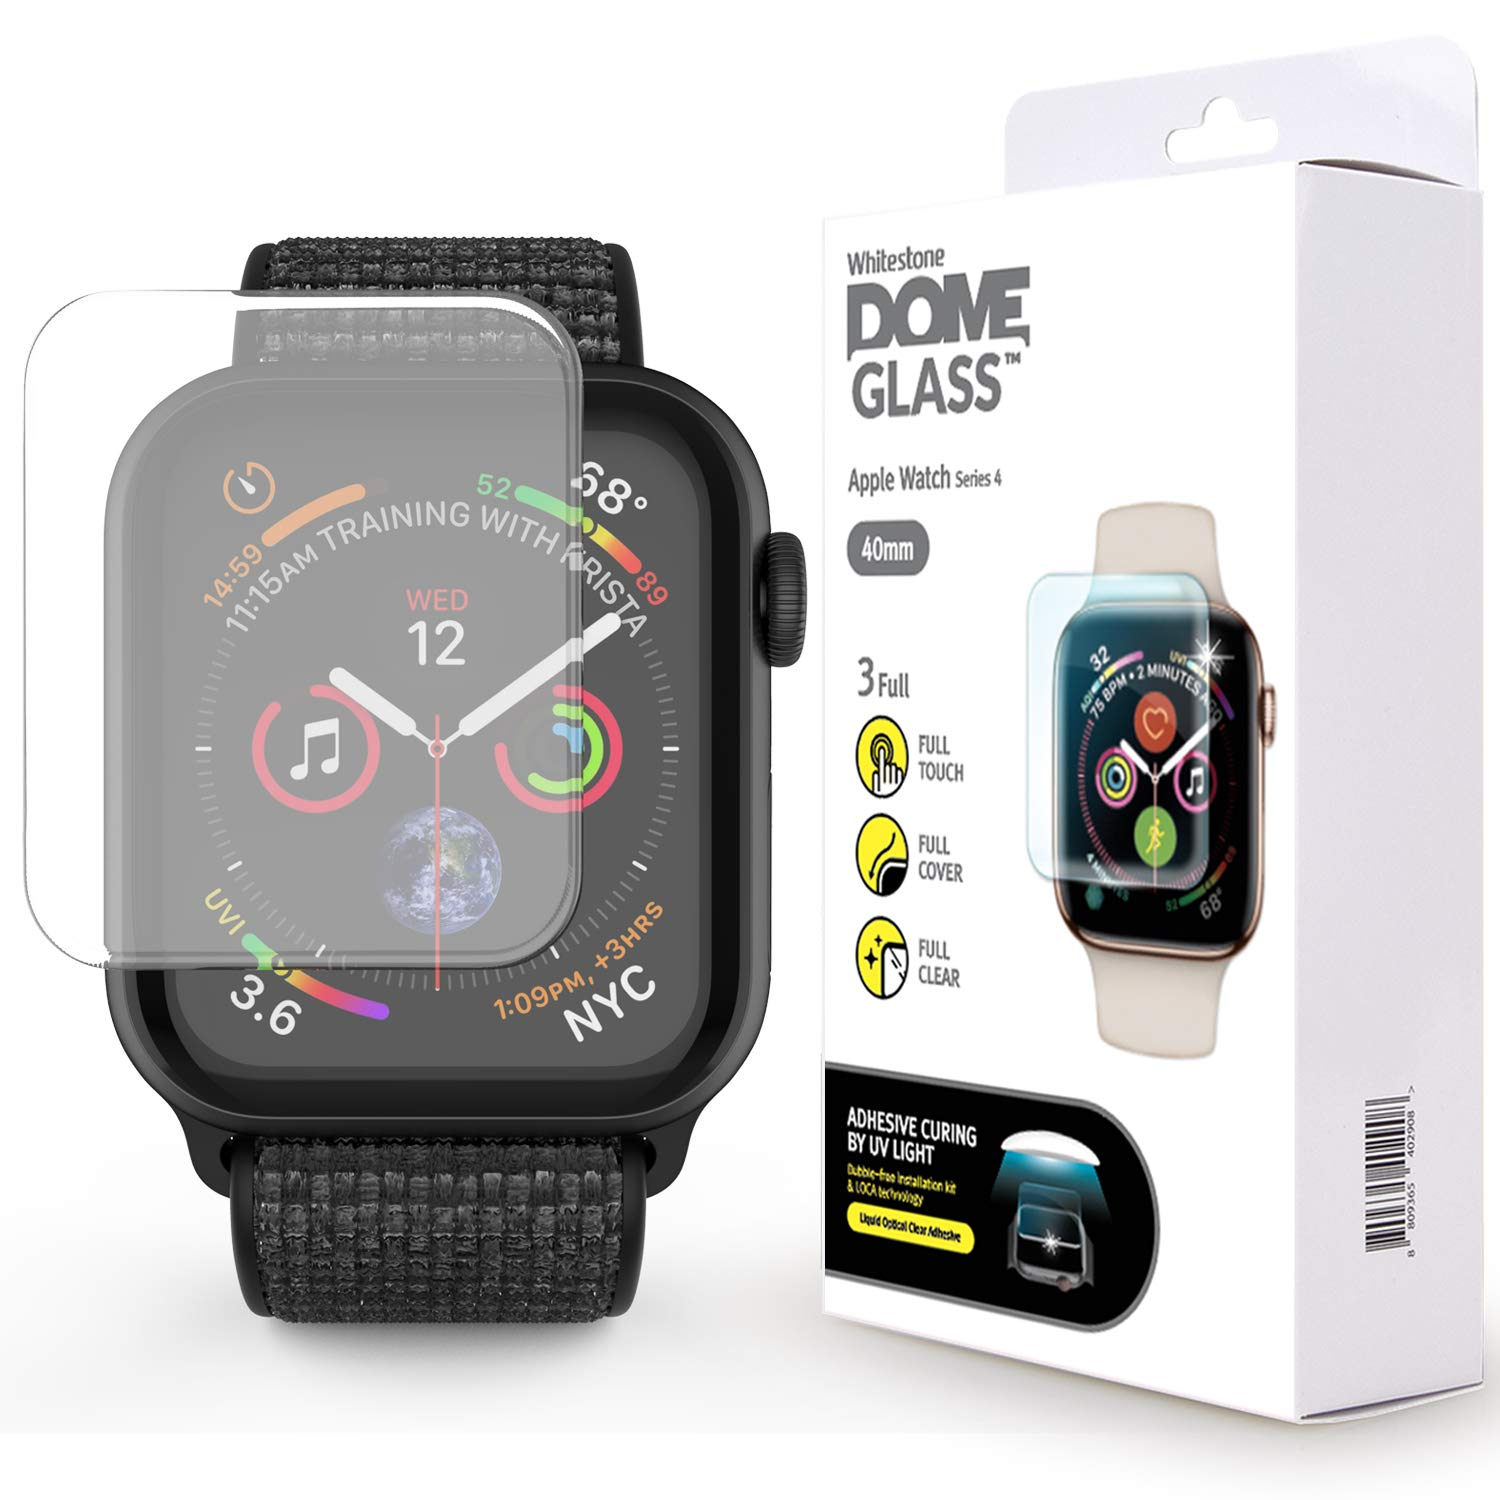 Apple Watch 40mm Screen Protector, [DOME GLASS] Liquid Adhesive for Full Coverage Tempered Glass [NO UV Light Included] and Protection by Whitestone for The Apple Watch 4 - Replacement Kit ONLY